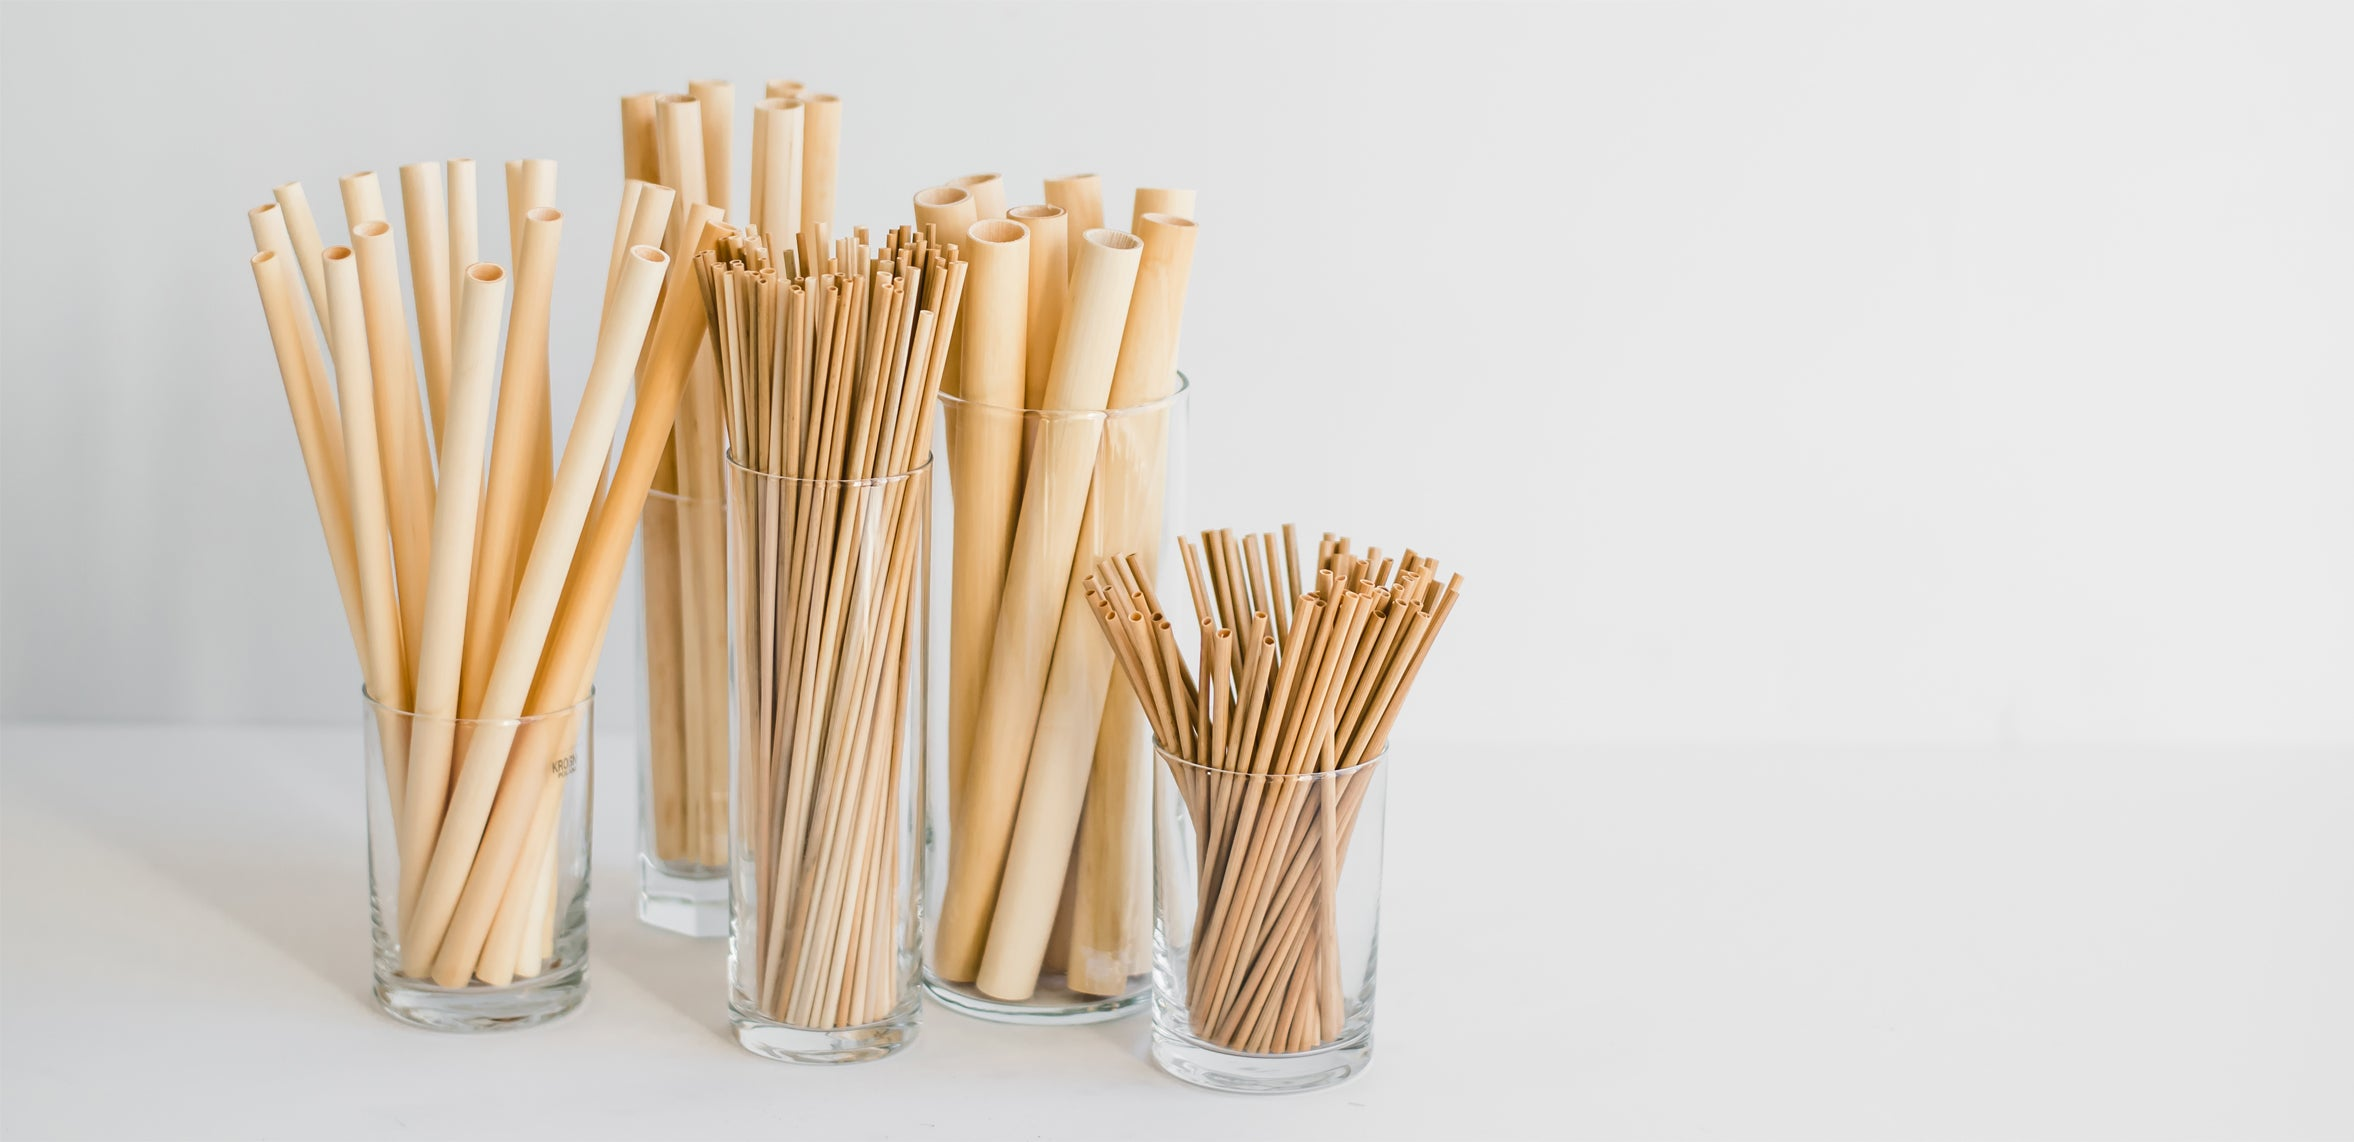 HAY Straws, Hay stir Sticks, hay jumbo, hay products